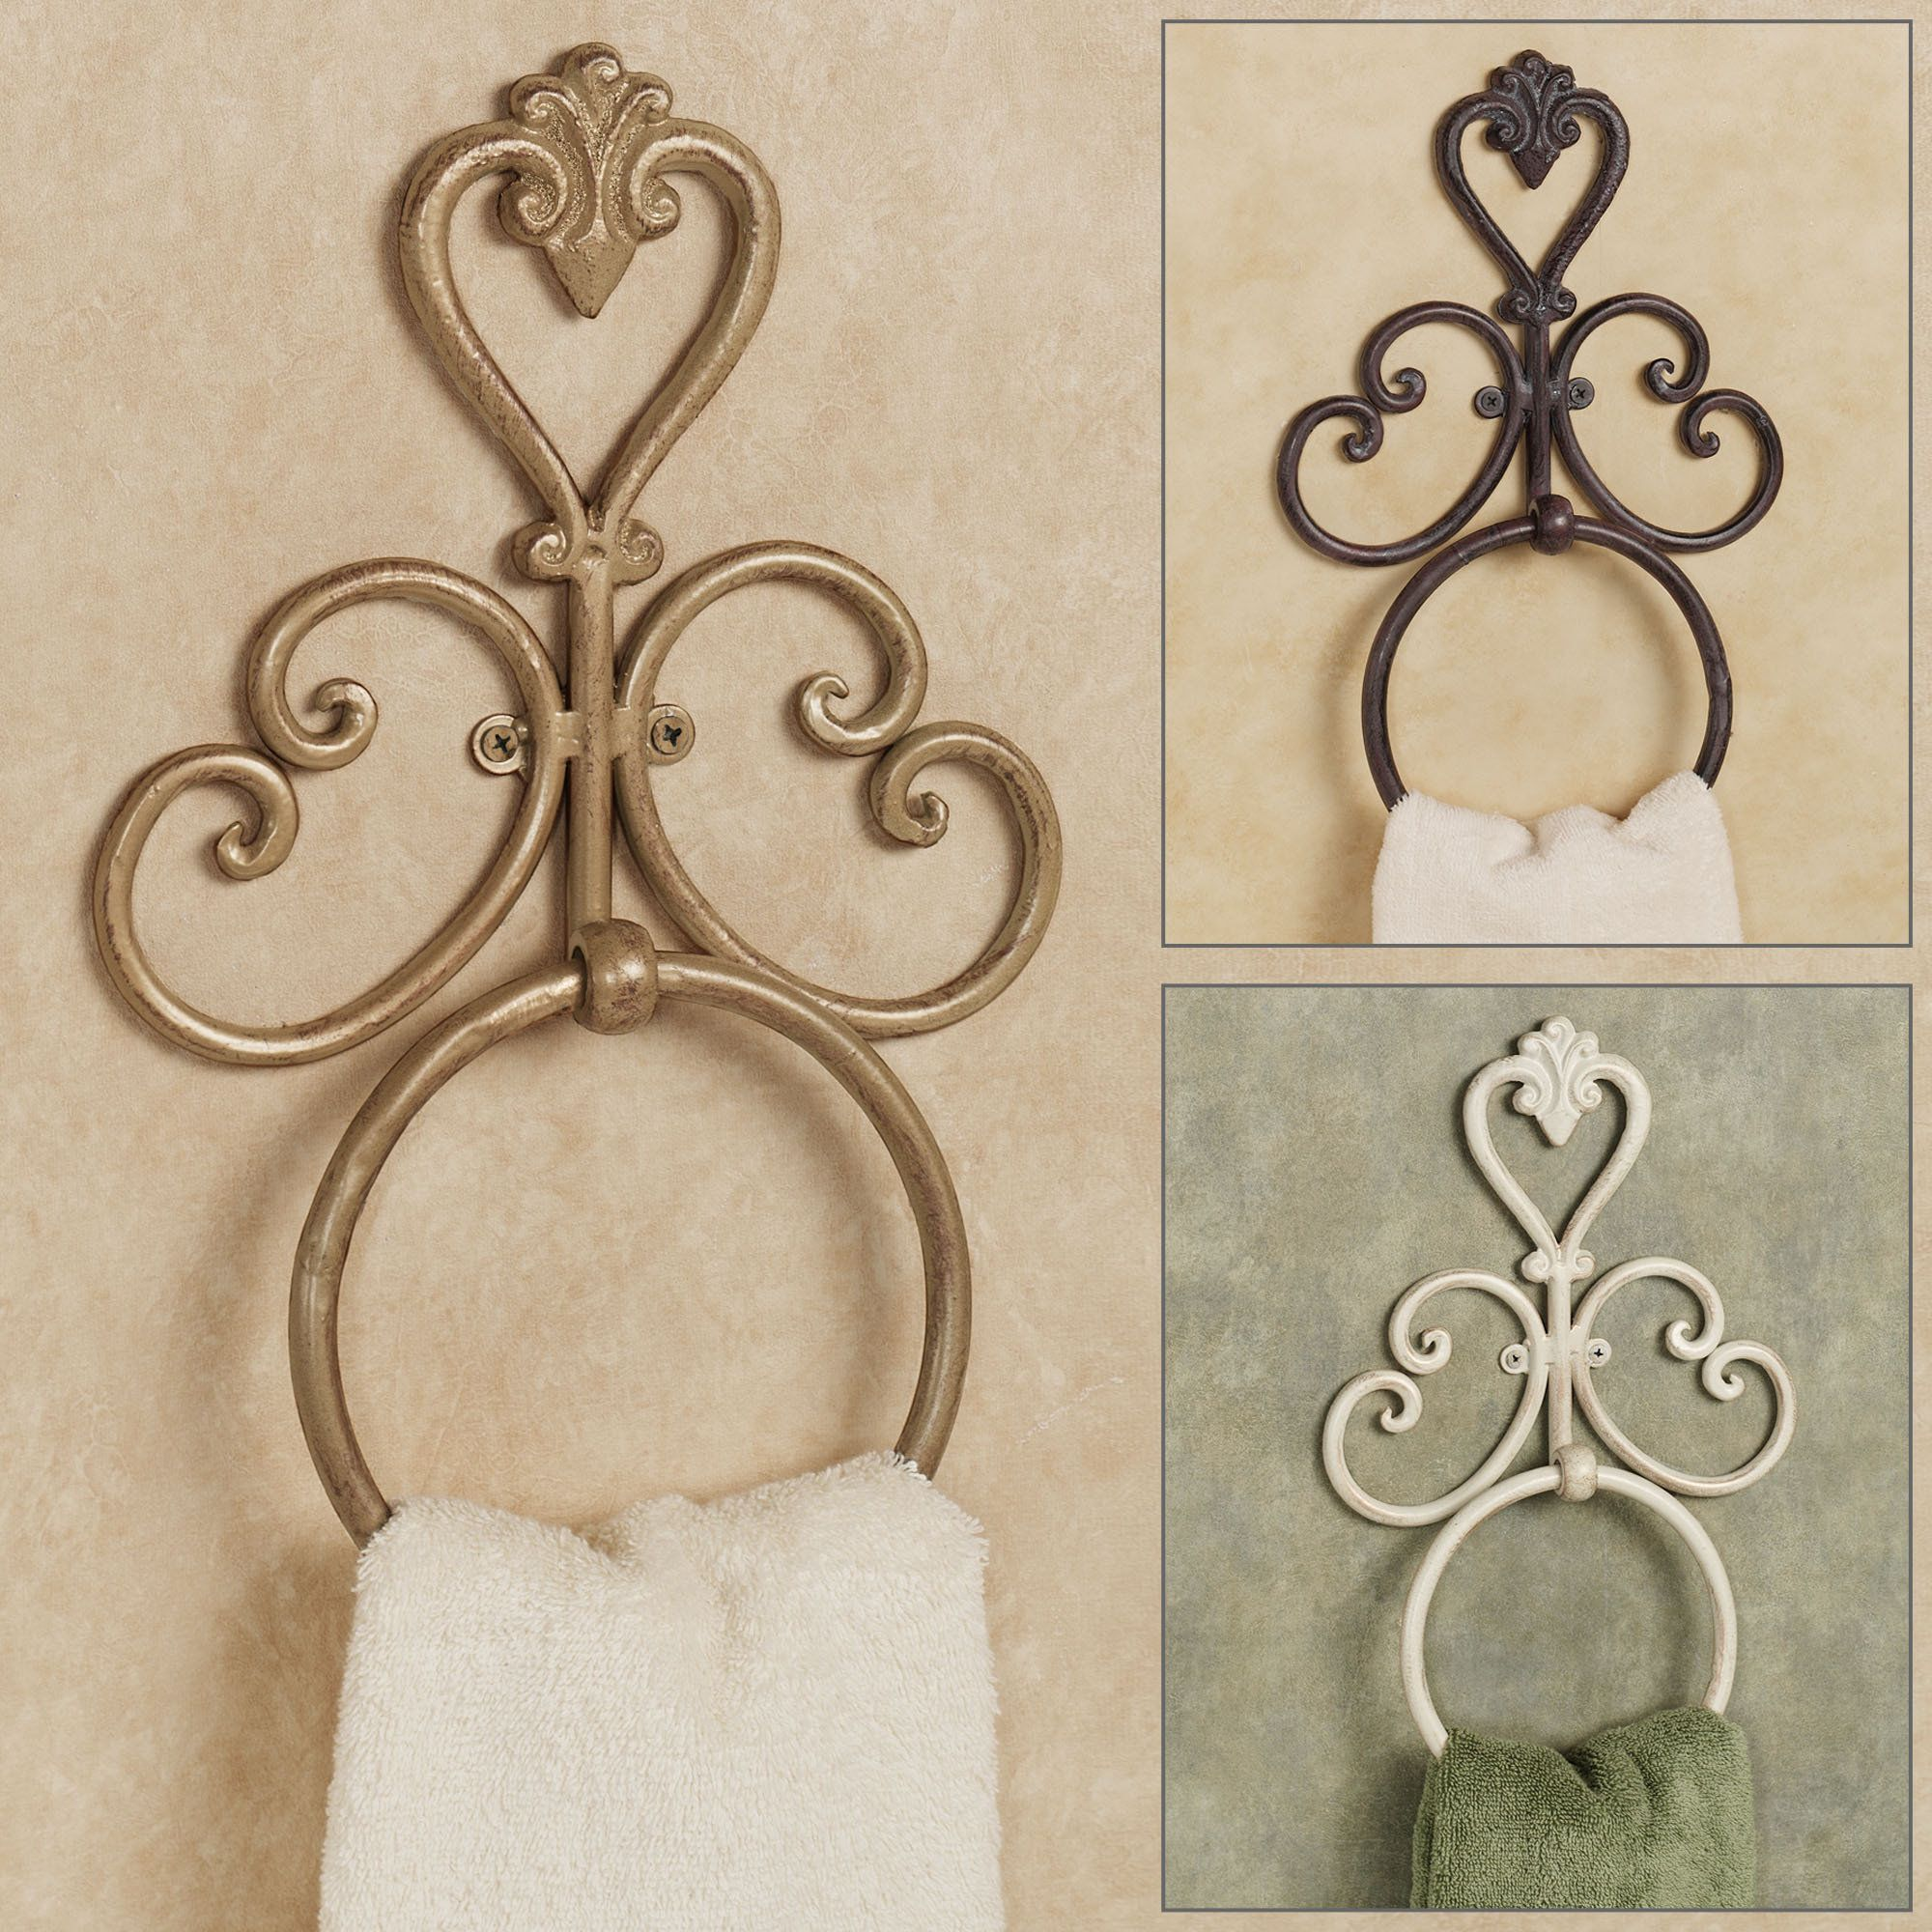 Aldabella Wall Mounted Towel Ring